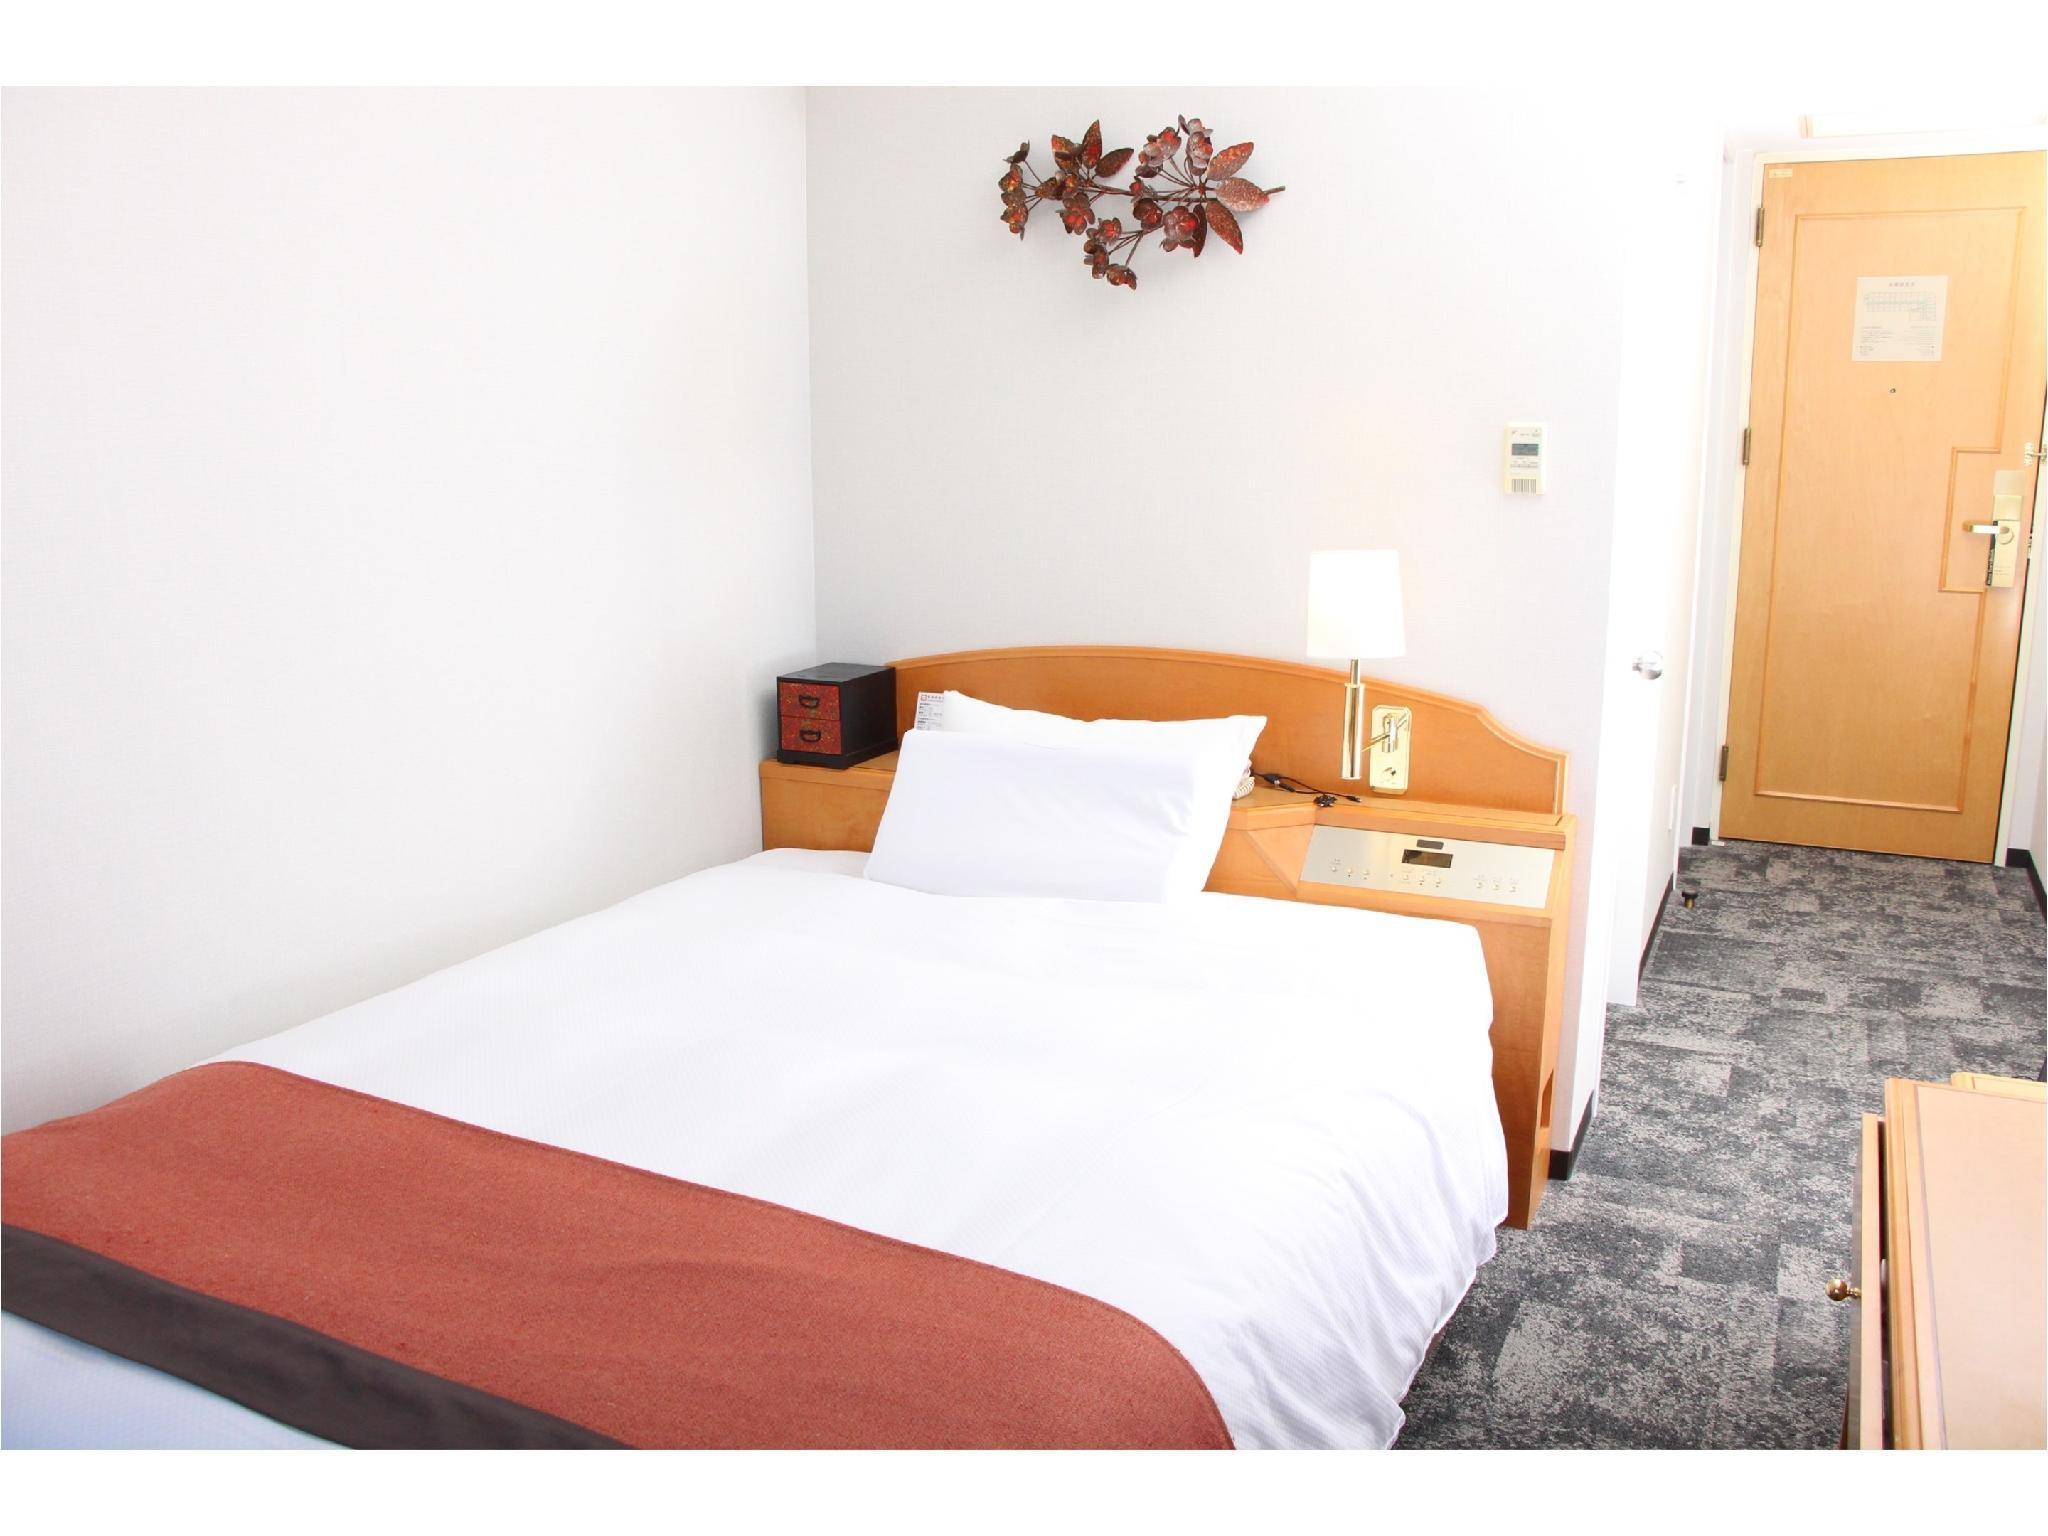 Deluxe Comfort Semi-double Room (Type A)